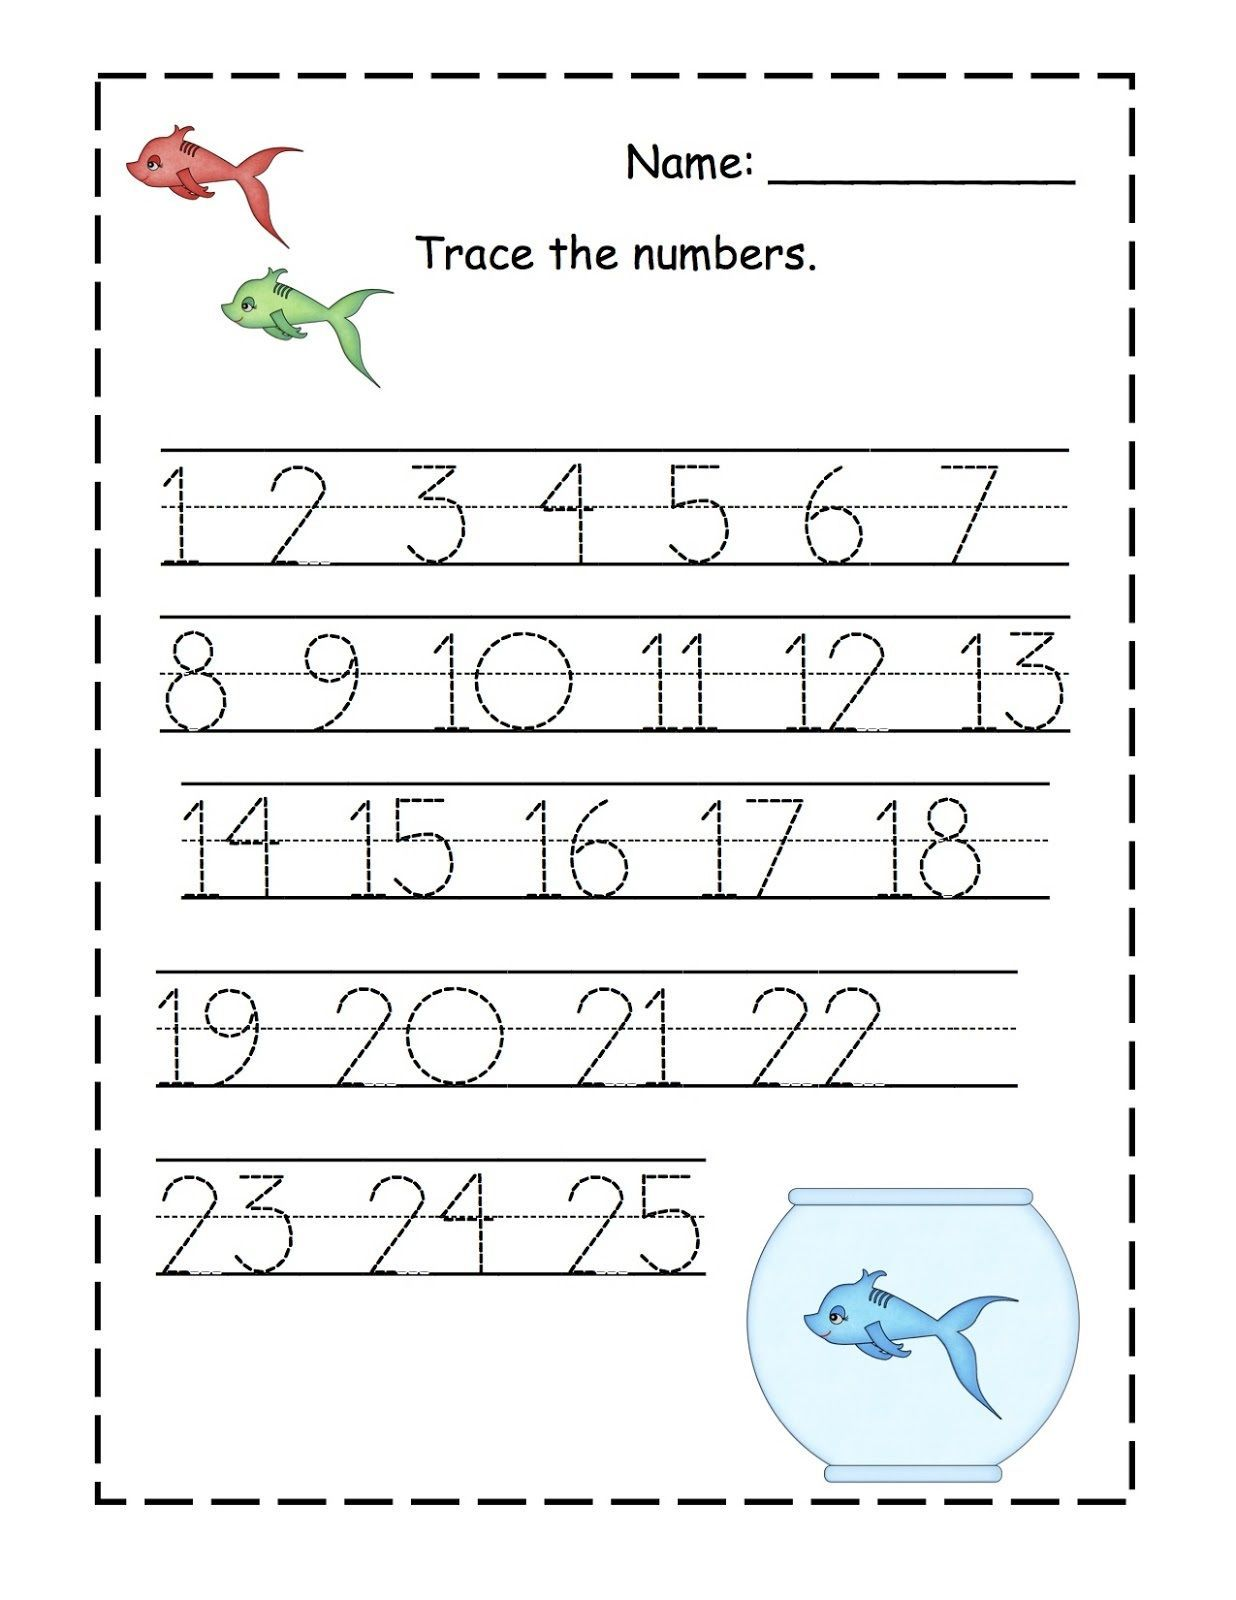 Printables Traceable Numbers Worksheets 1 20 Traceable